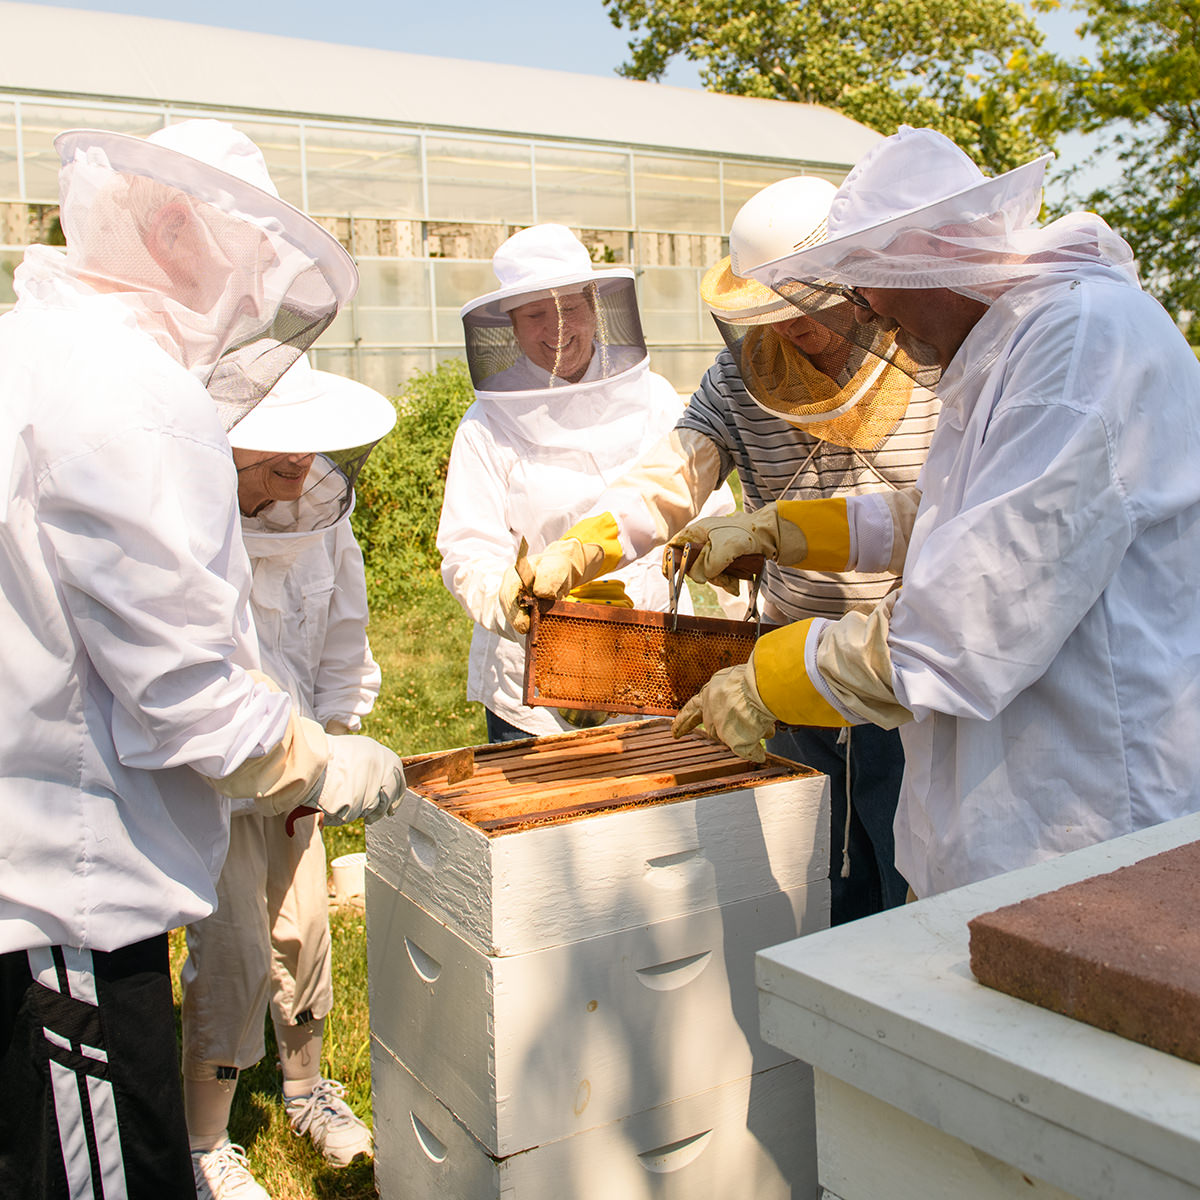 The Bee Club at Garden Spot Village check and take care of their bee hives.